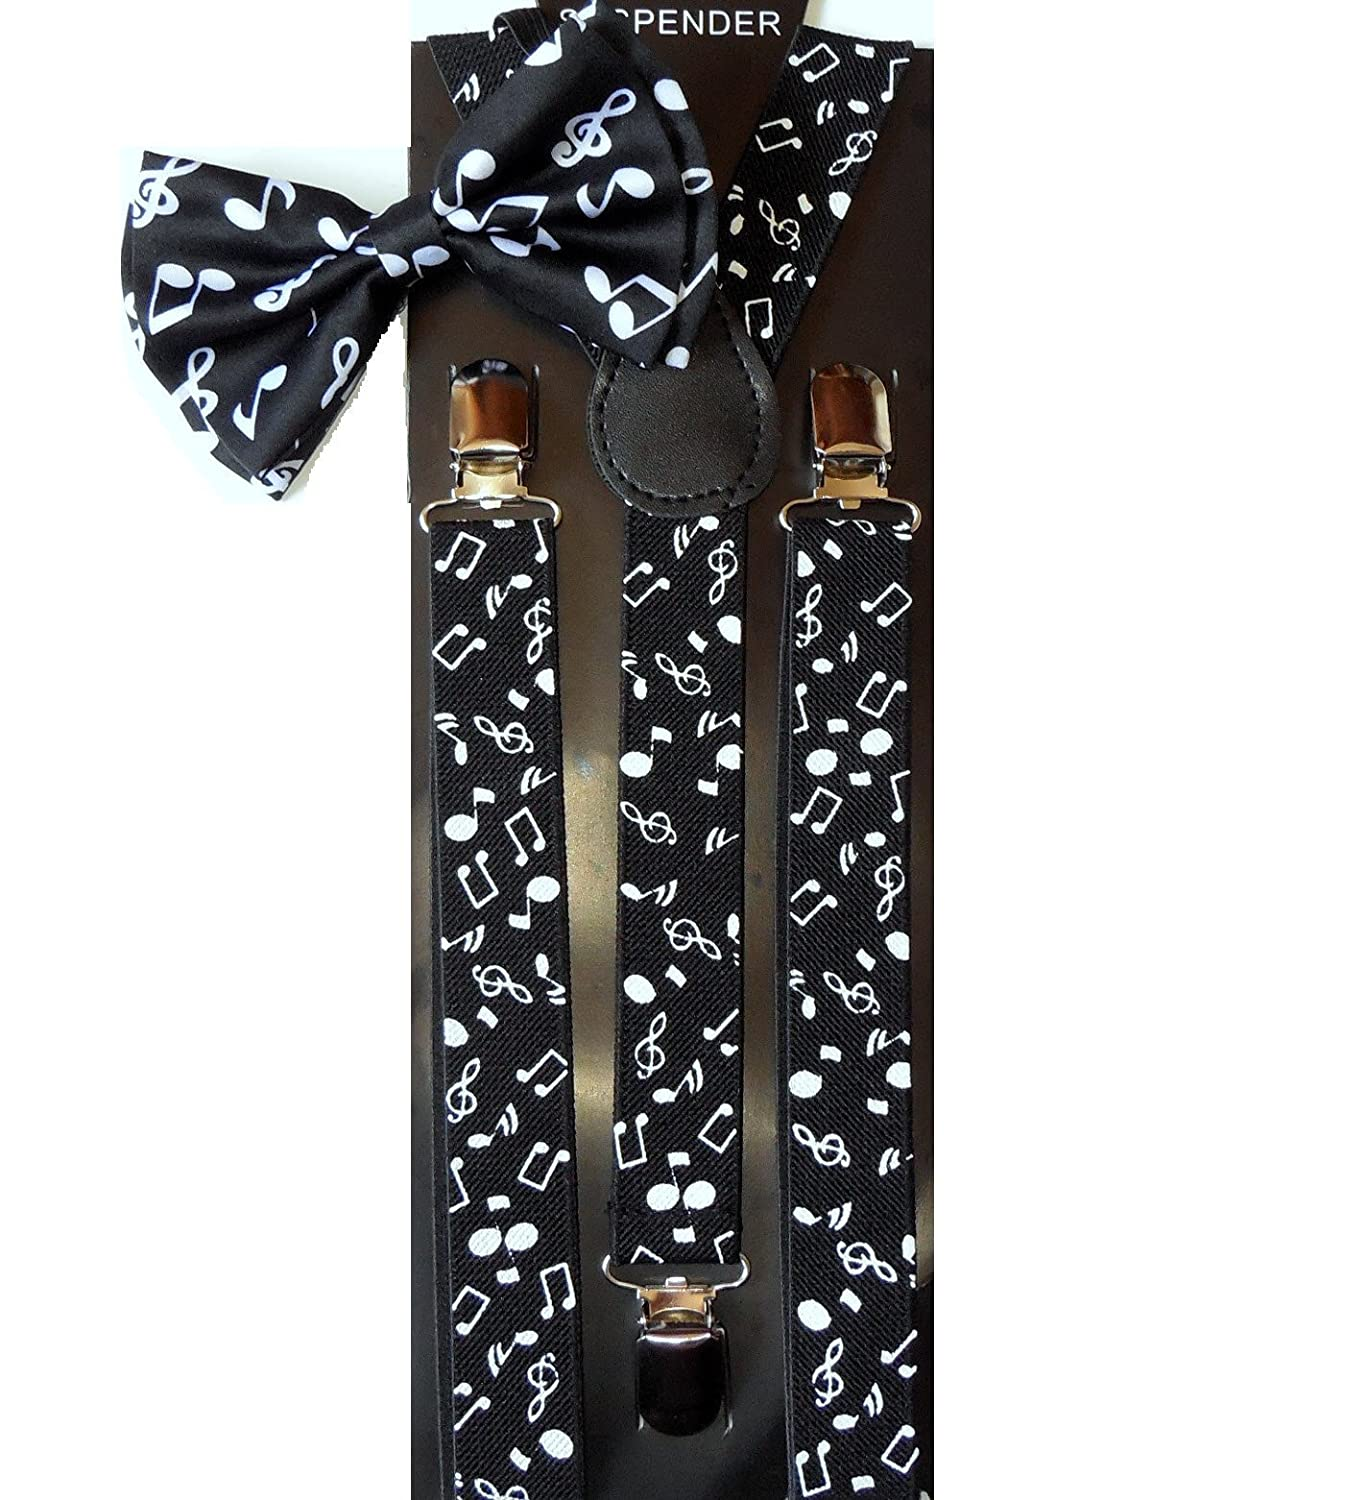 Unisex Awesome Clip-on Braces MUSIC NOTES Print Bowtie and Matching Suspenders Set - Adjustable